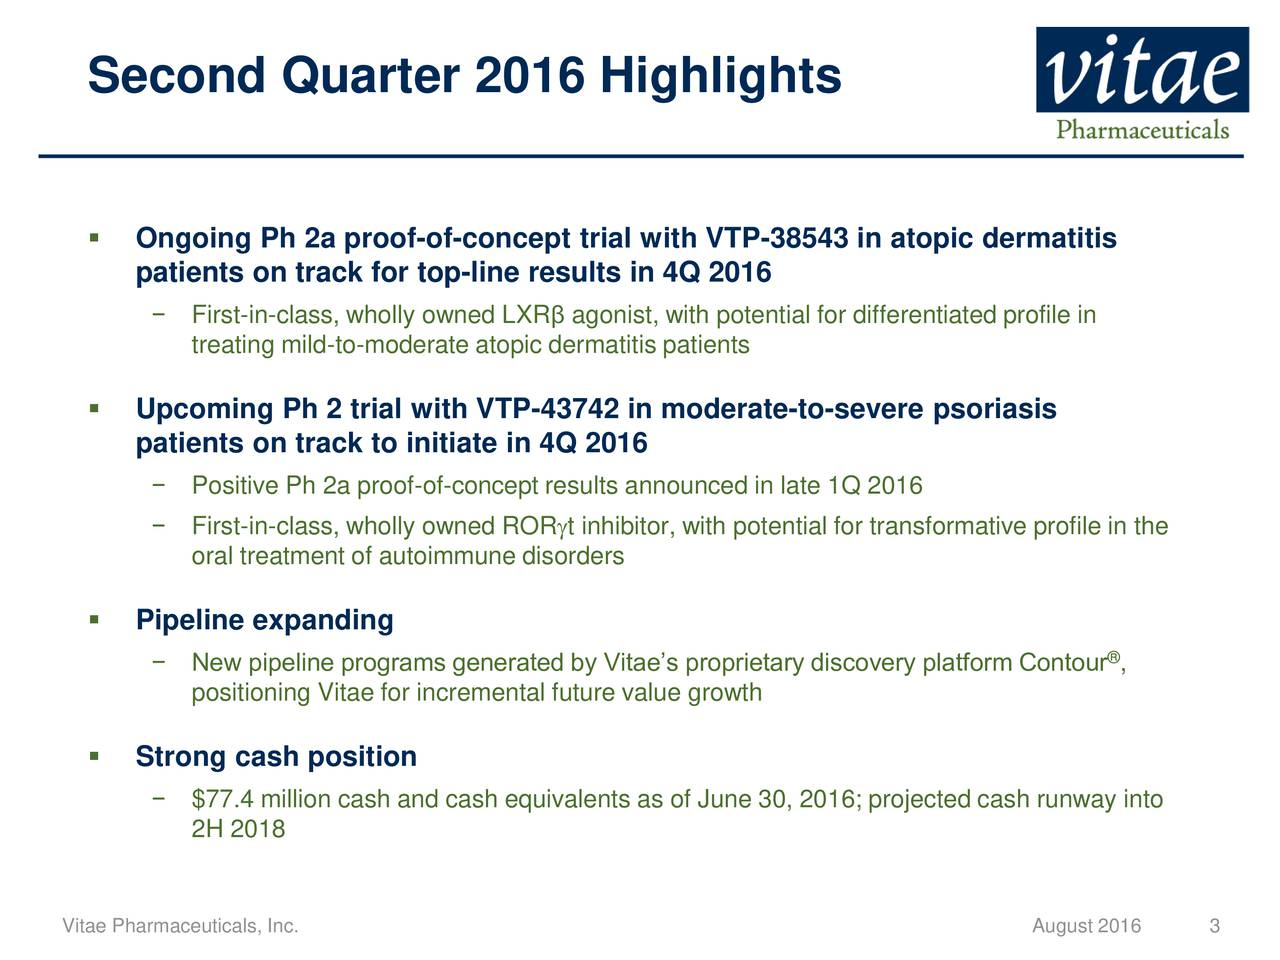 Ongoing Ph 2a proof-of-concept trial with VTP-38543 in atopic dermatitis patients on track for top-line results in 4Q 2016 First-in-class, wholly owned LXR agonist, with potential for differentiated profile in treating mild-to-moderate atopic dermatitis patients Upcoming Ph 2 trial with VTP-43742 in moderate-to-severe psoriasis patients on track to initiate in 4Q 2016 Positive Ph 2a proof-of-concept results announced in late 1Q 2016 First-in-class, wholly owned RORt inhibitor, with potential for transformative profile in the oral treatment of autoimmune disorders Pipeline expanding New pipeline programs generated by Vitaes proprietary discovery platform Contour , positioning Vitae for incremental future value growth Strong cash position $77.4 million cash and cash equivalents as of June 30, 2016; projected cash runway into 2H 2018 Vitae Pharmaceuticals, Inc. August 2016 3